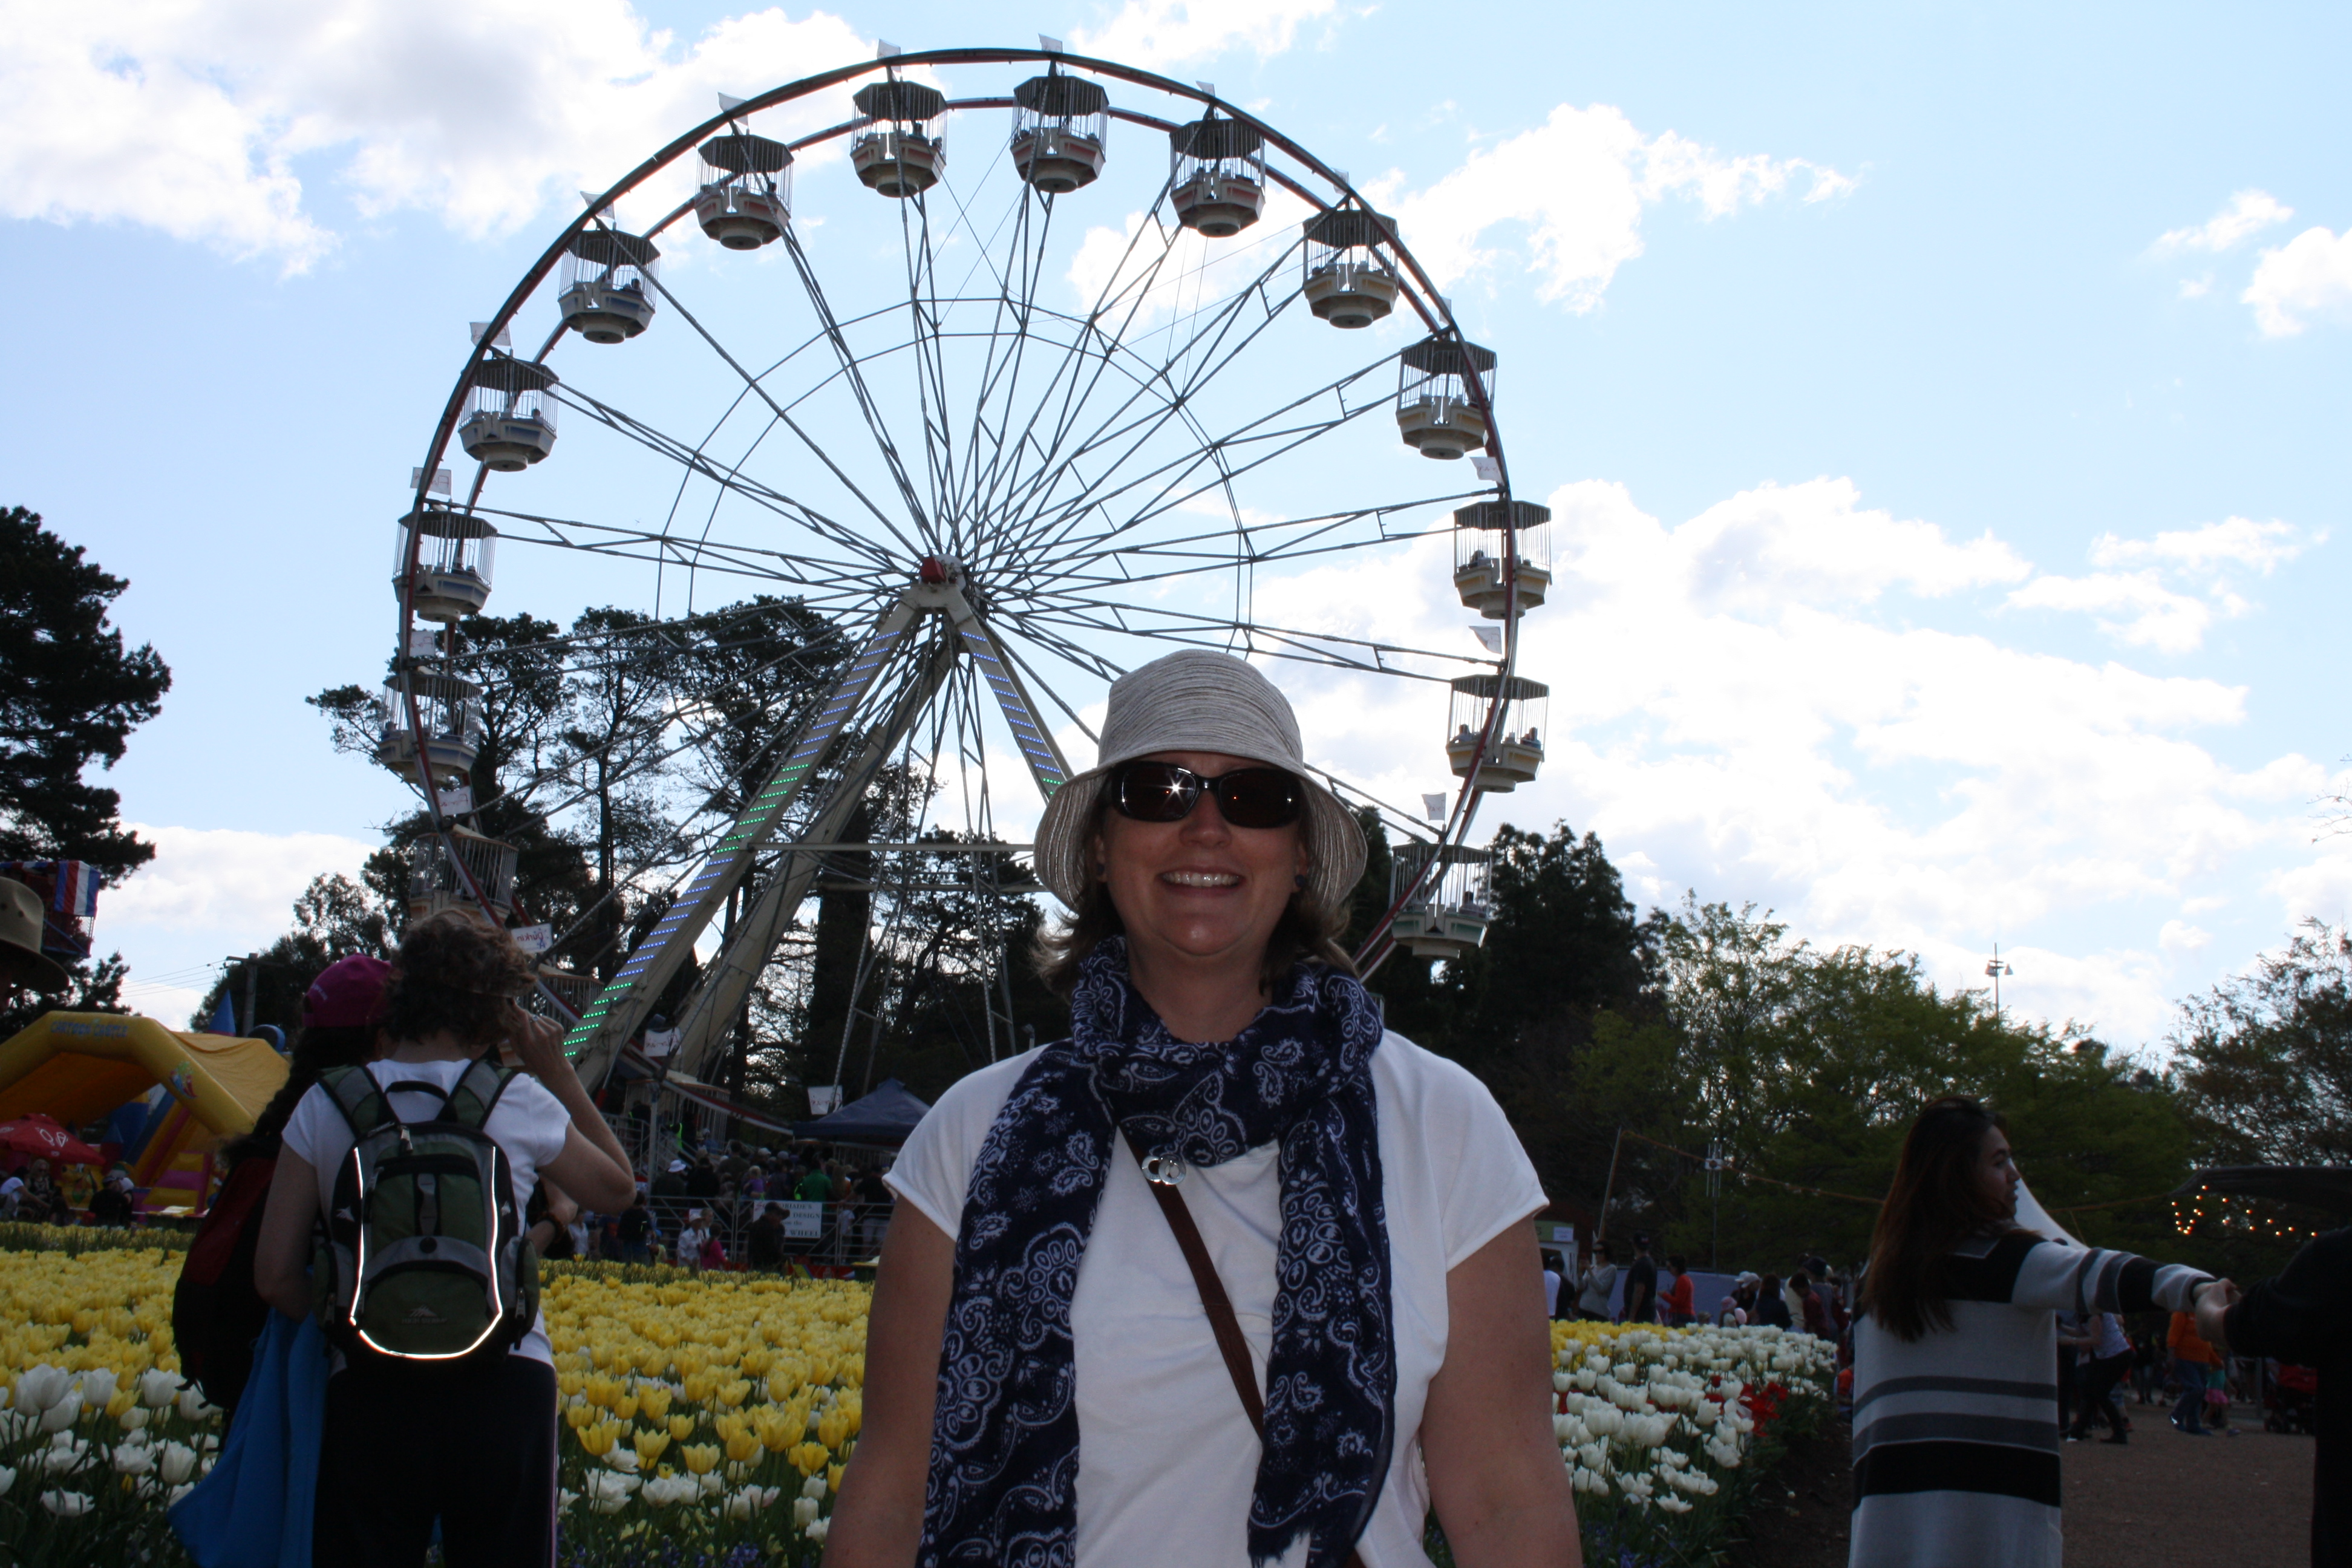 Felicity Kelly in front of ferris wheel